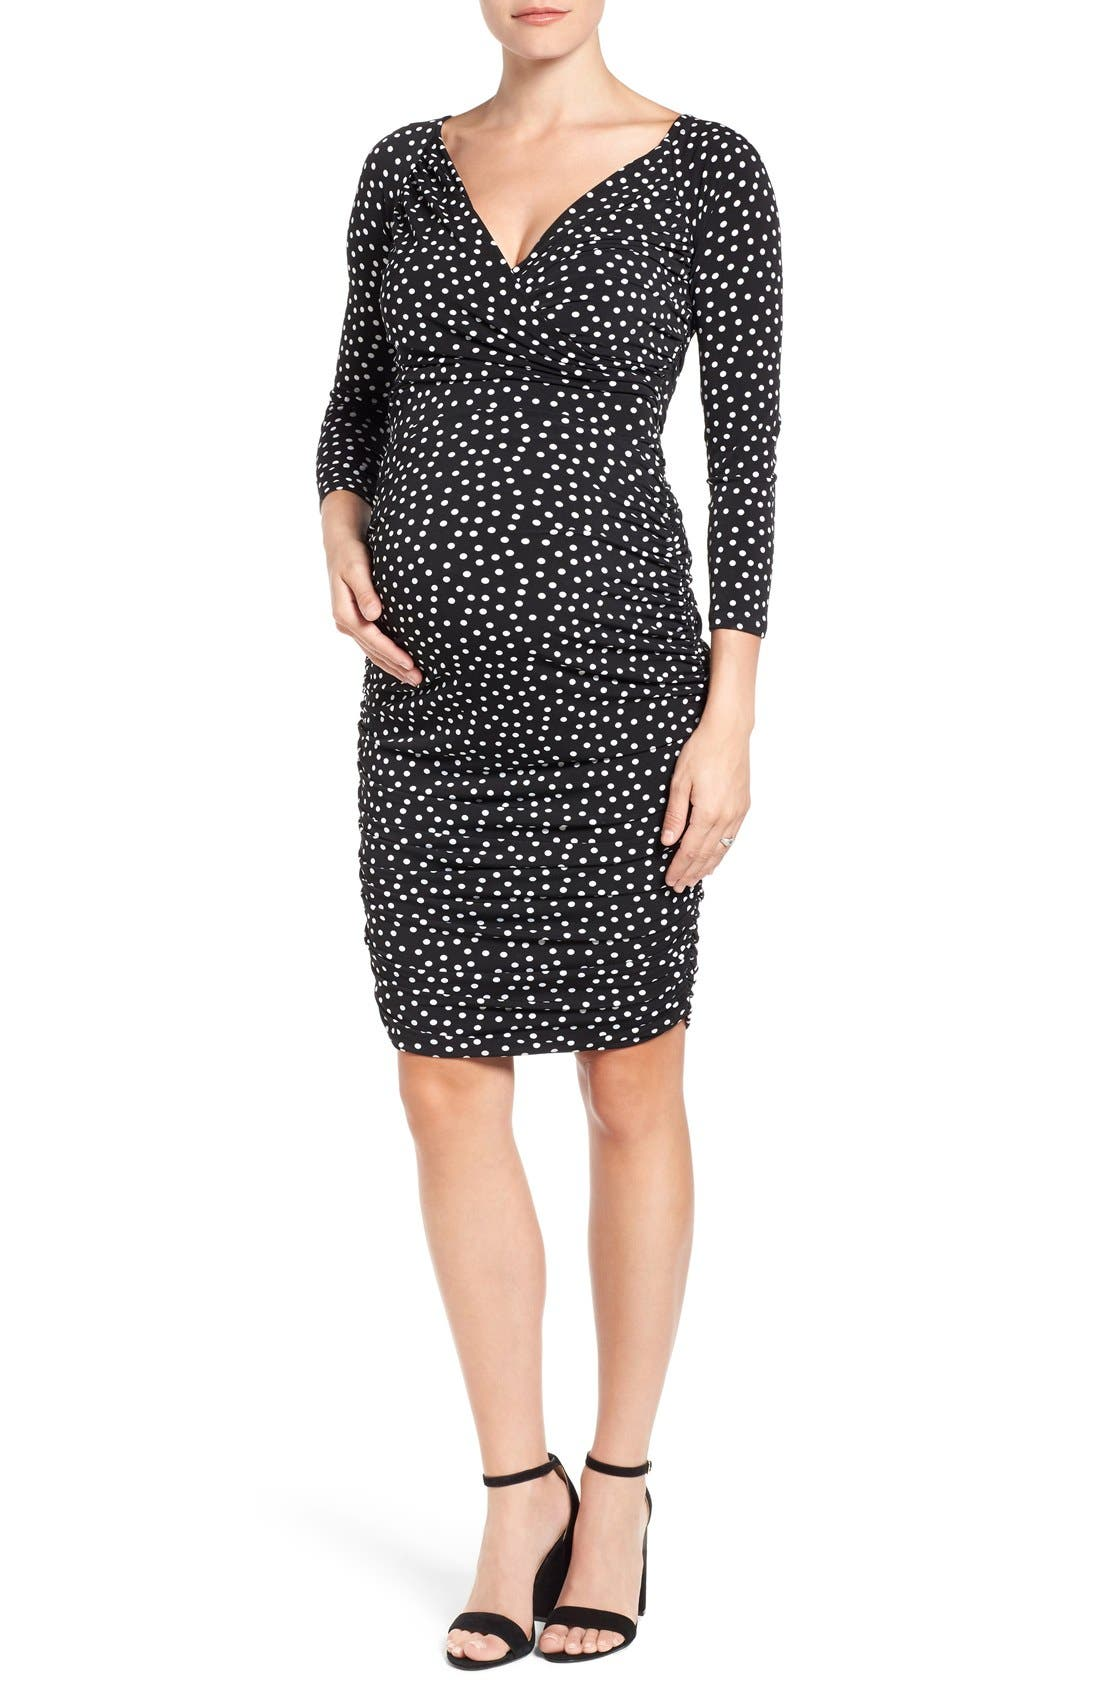 Leota 'Evelyn' Body-Con Maternity Dress